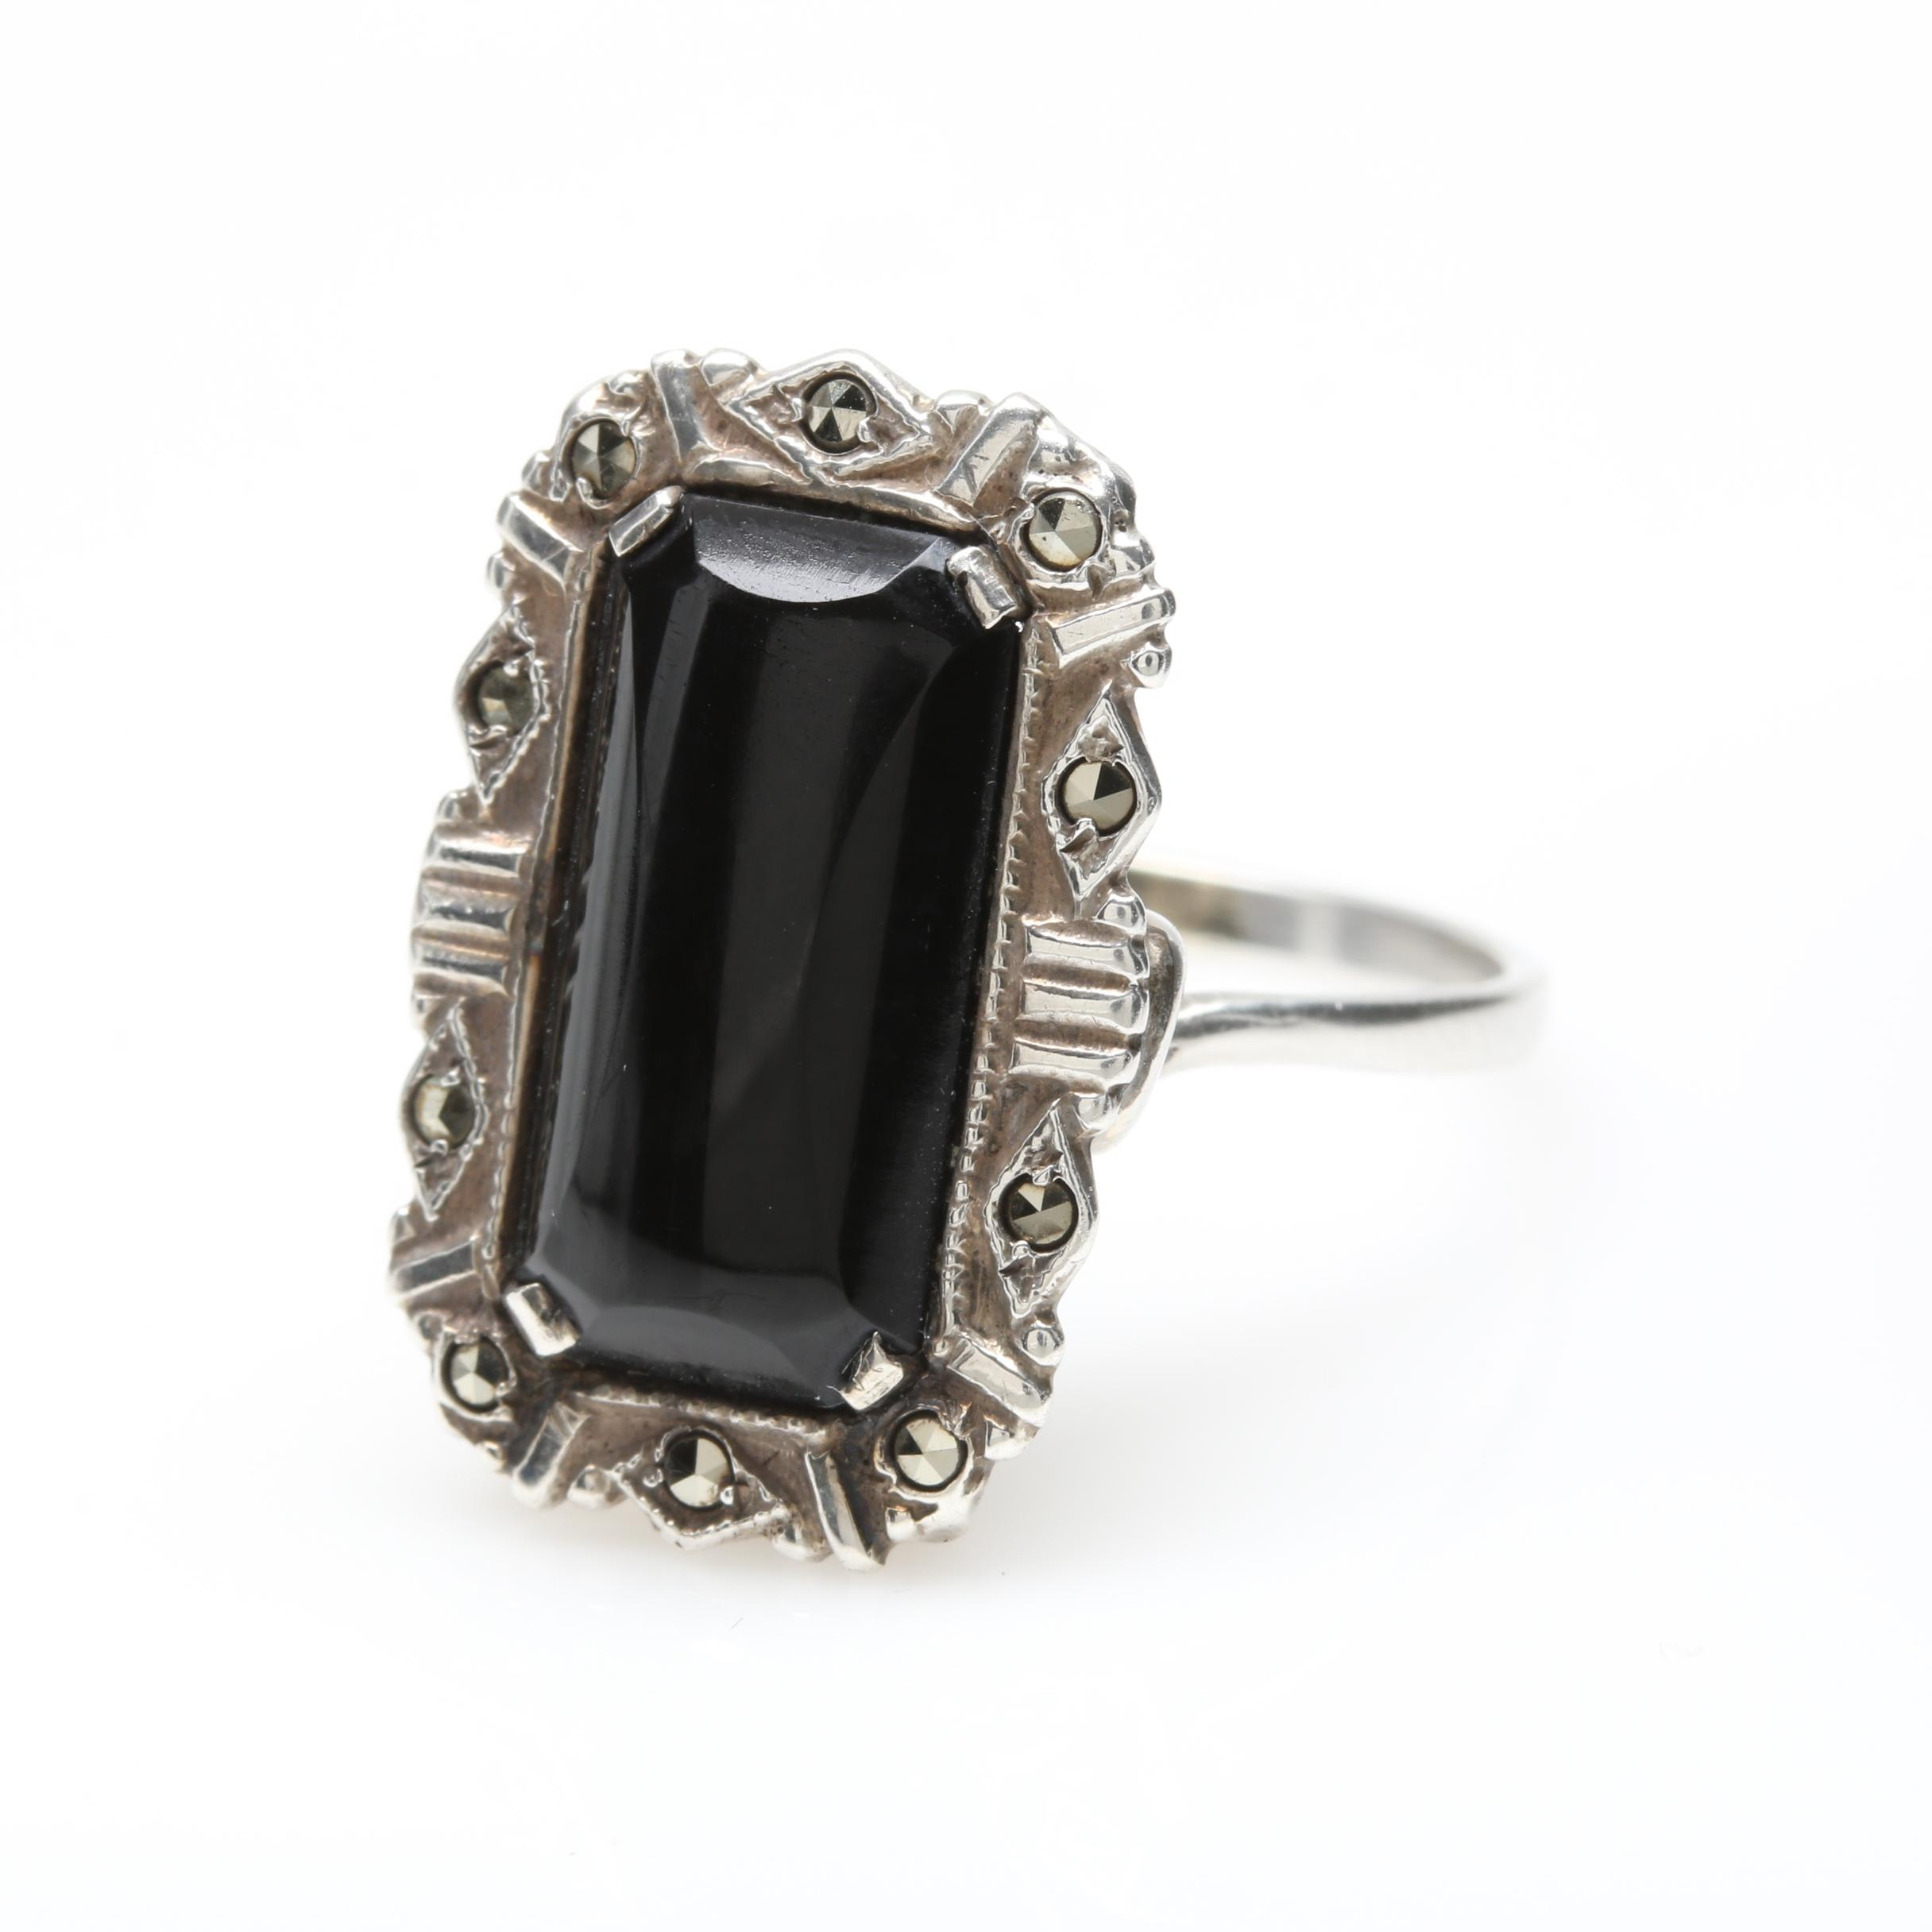 Vintage Sterling Silver Black Onyx and Marcasite Ring